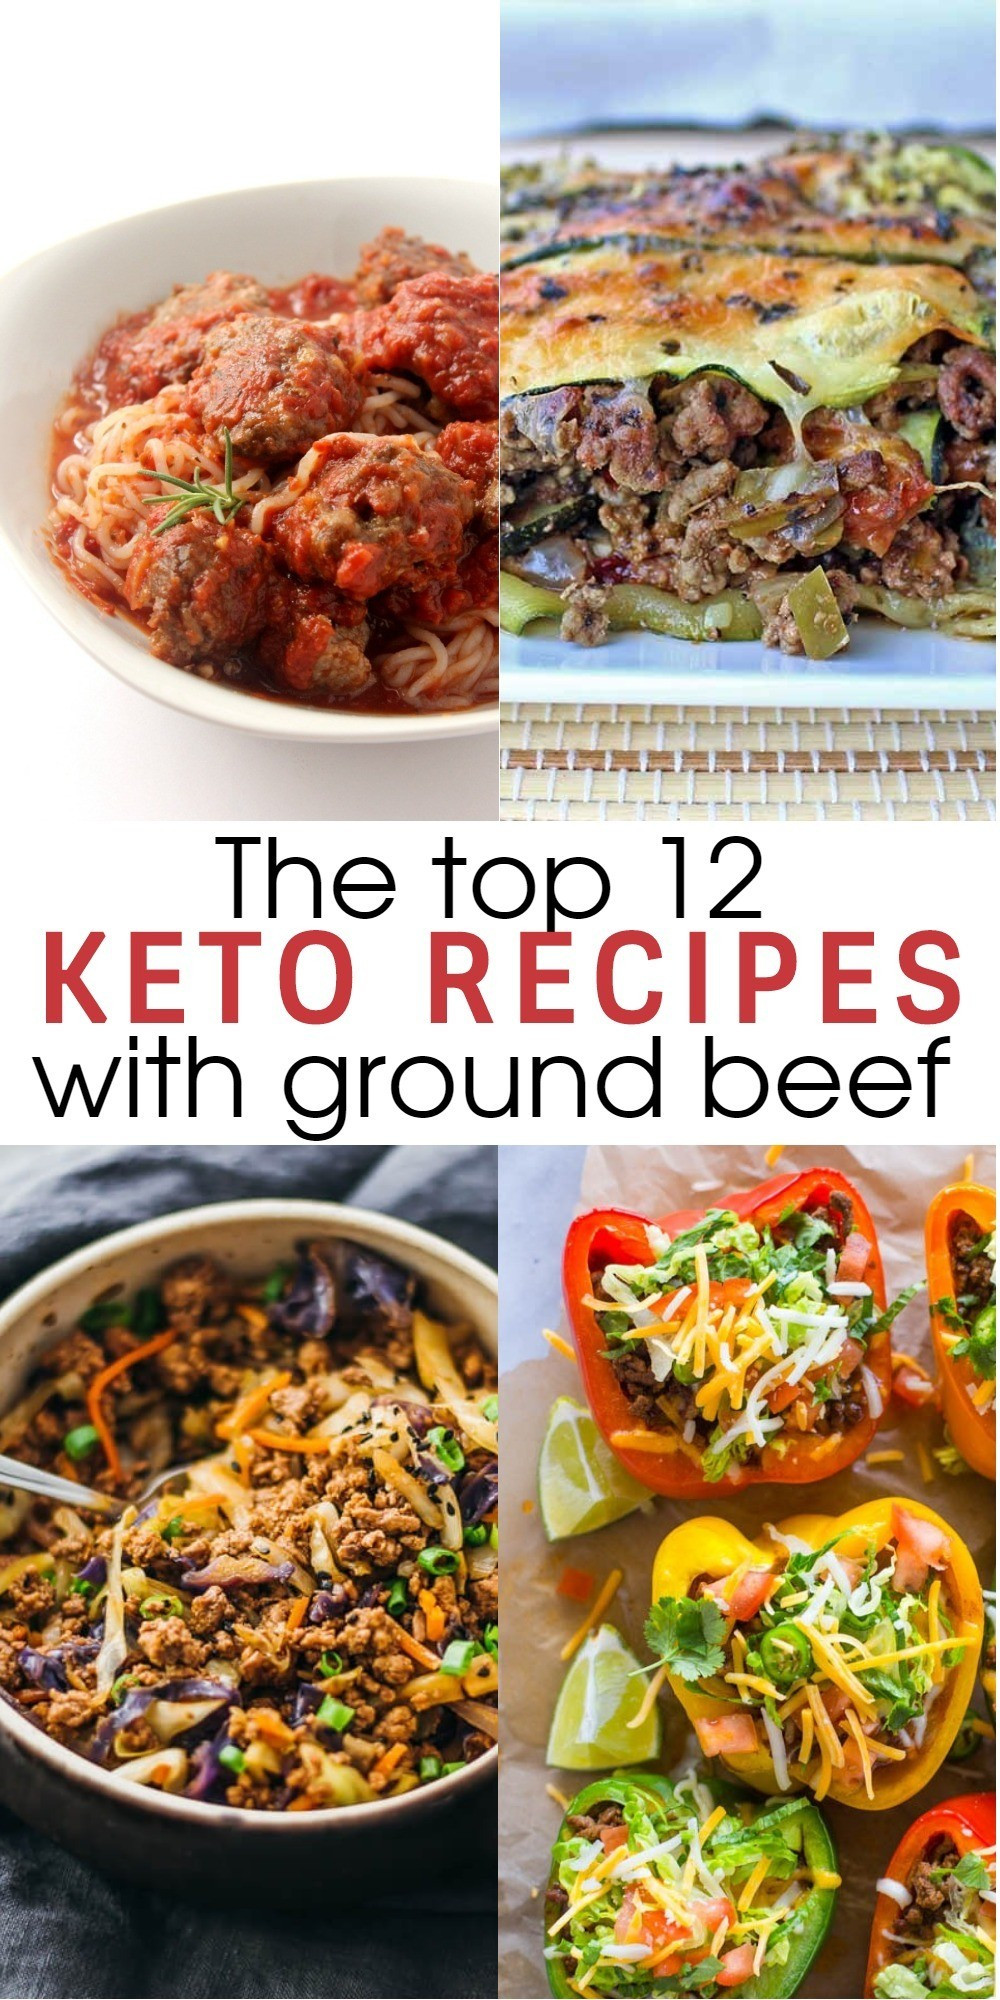 Heart Healthy Ground Beef Recipes  12 Flavorful and Easy Keto Recipes With Ground Beef To Try